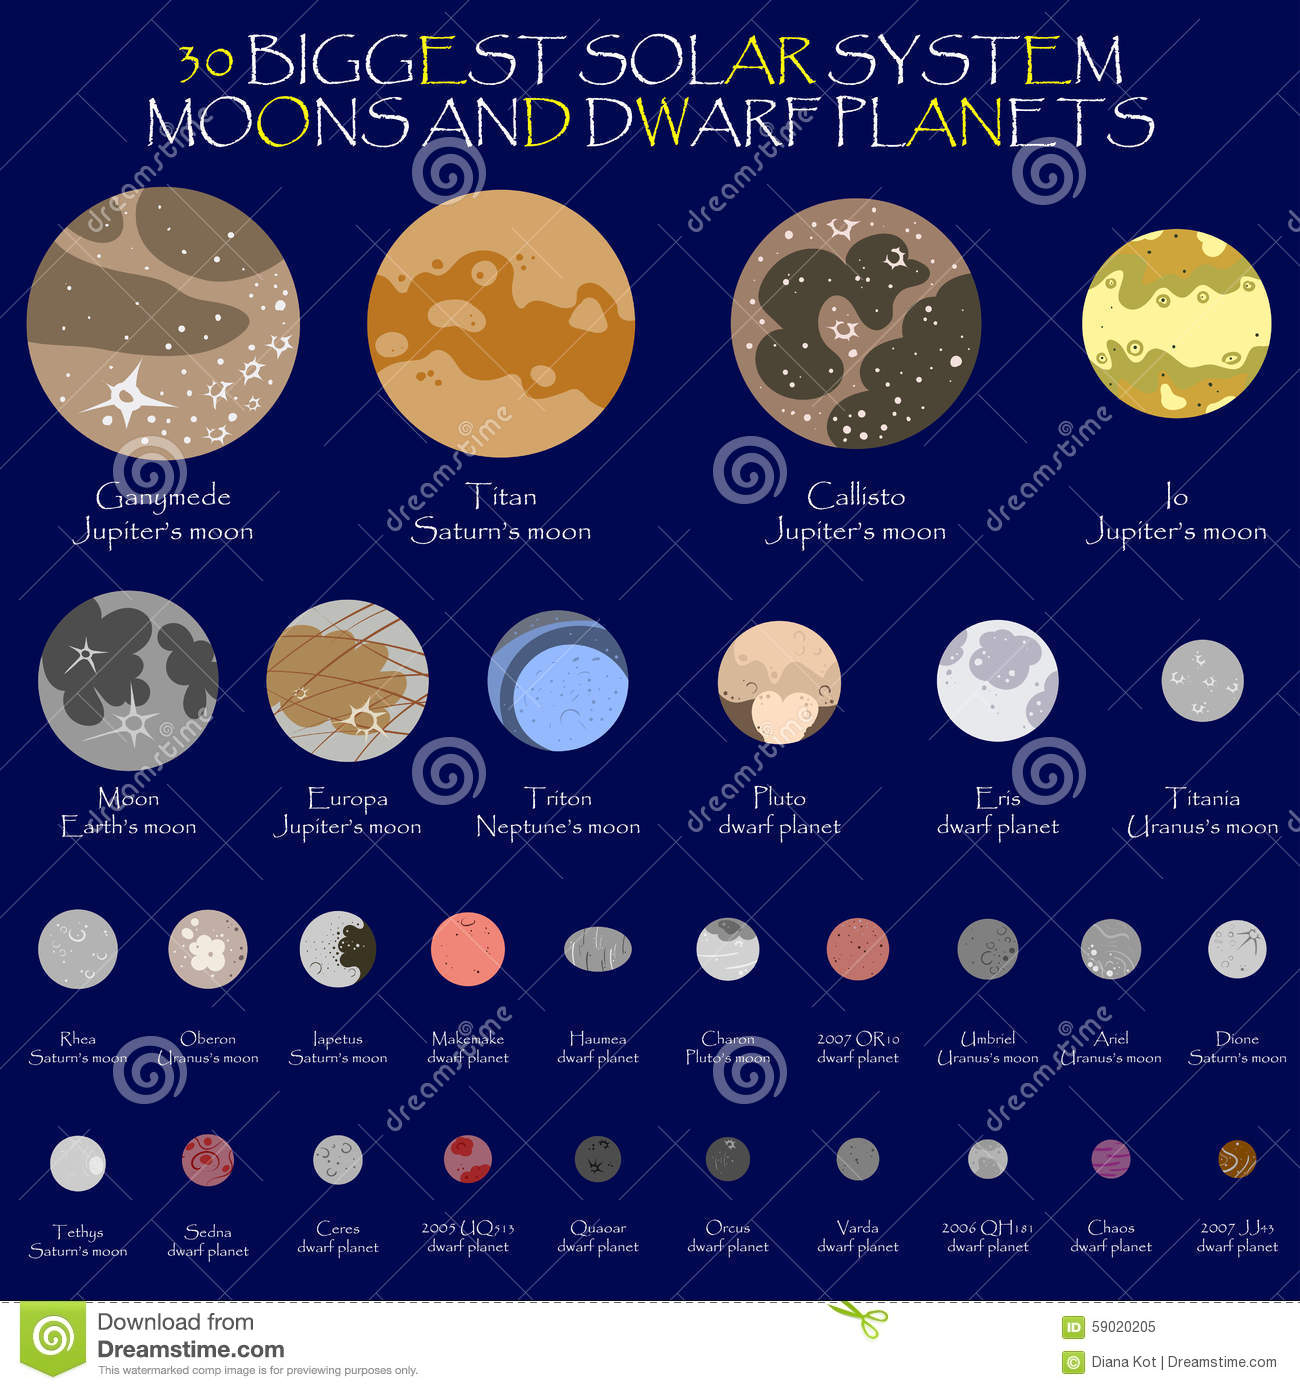 planets dwarf planets and moons - photo #9